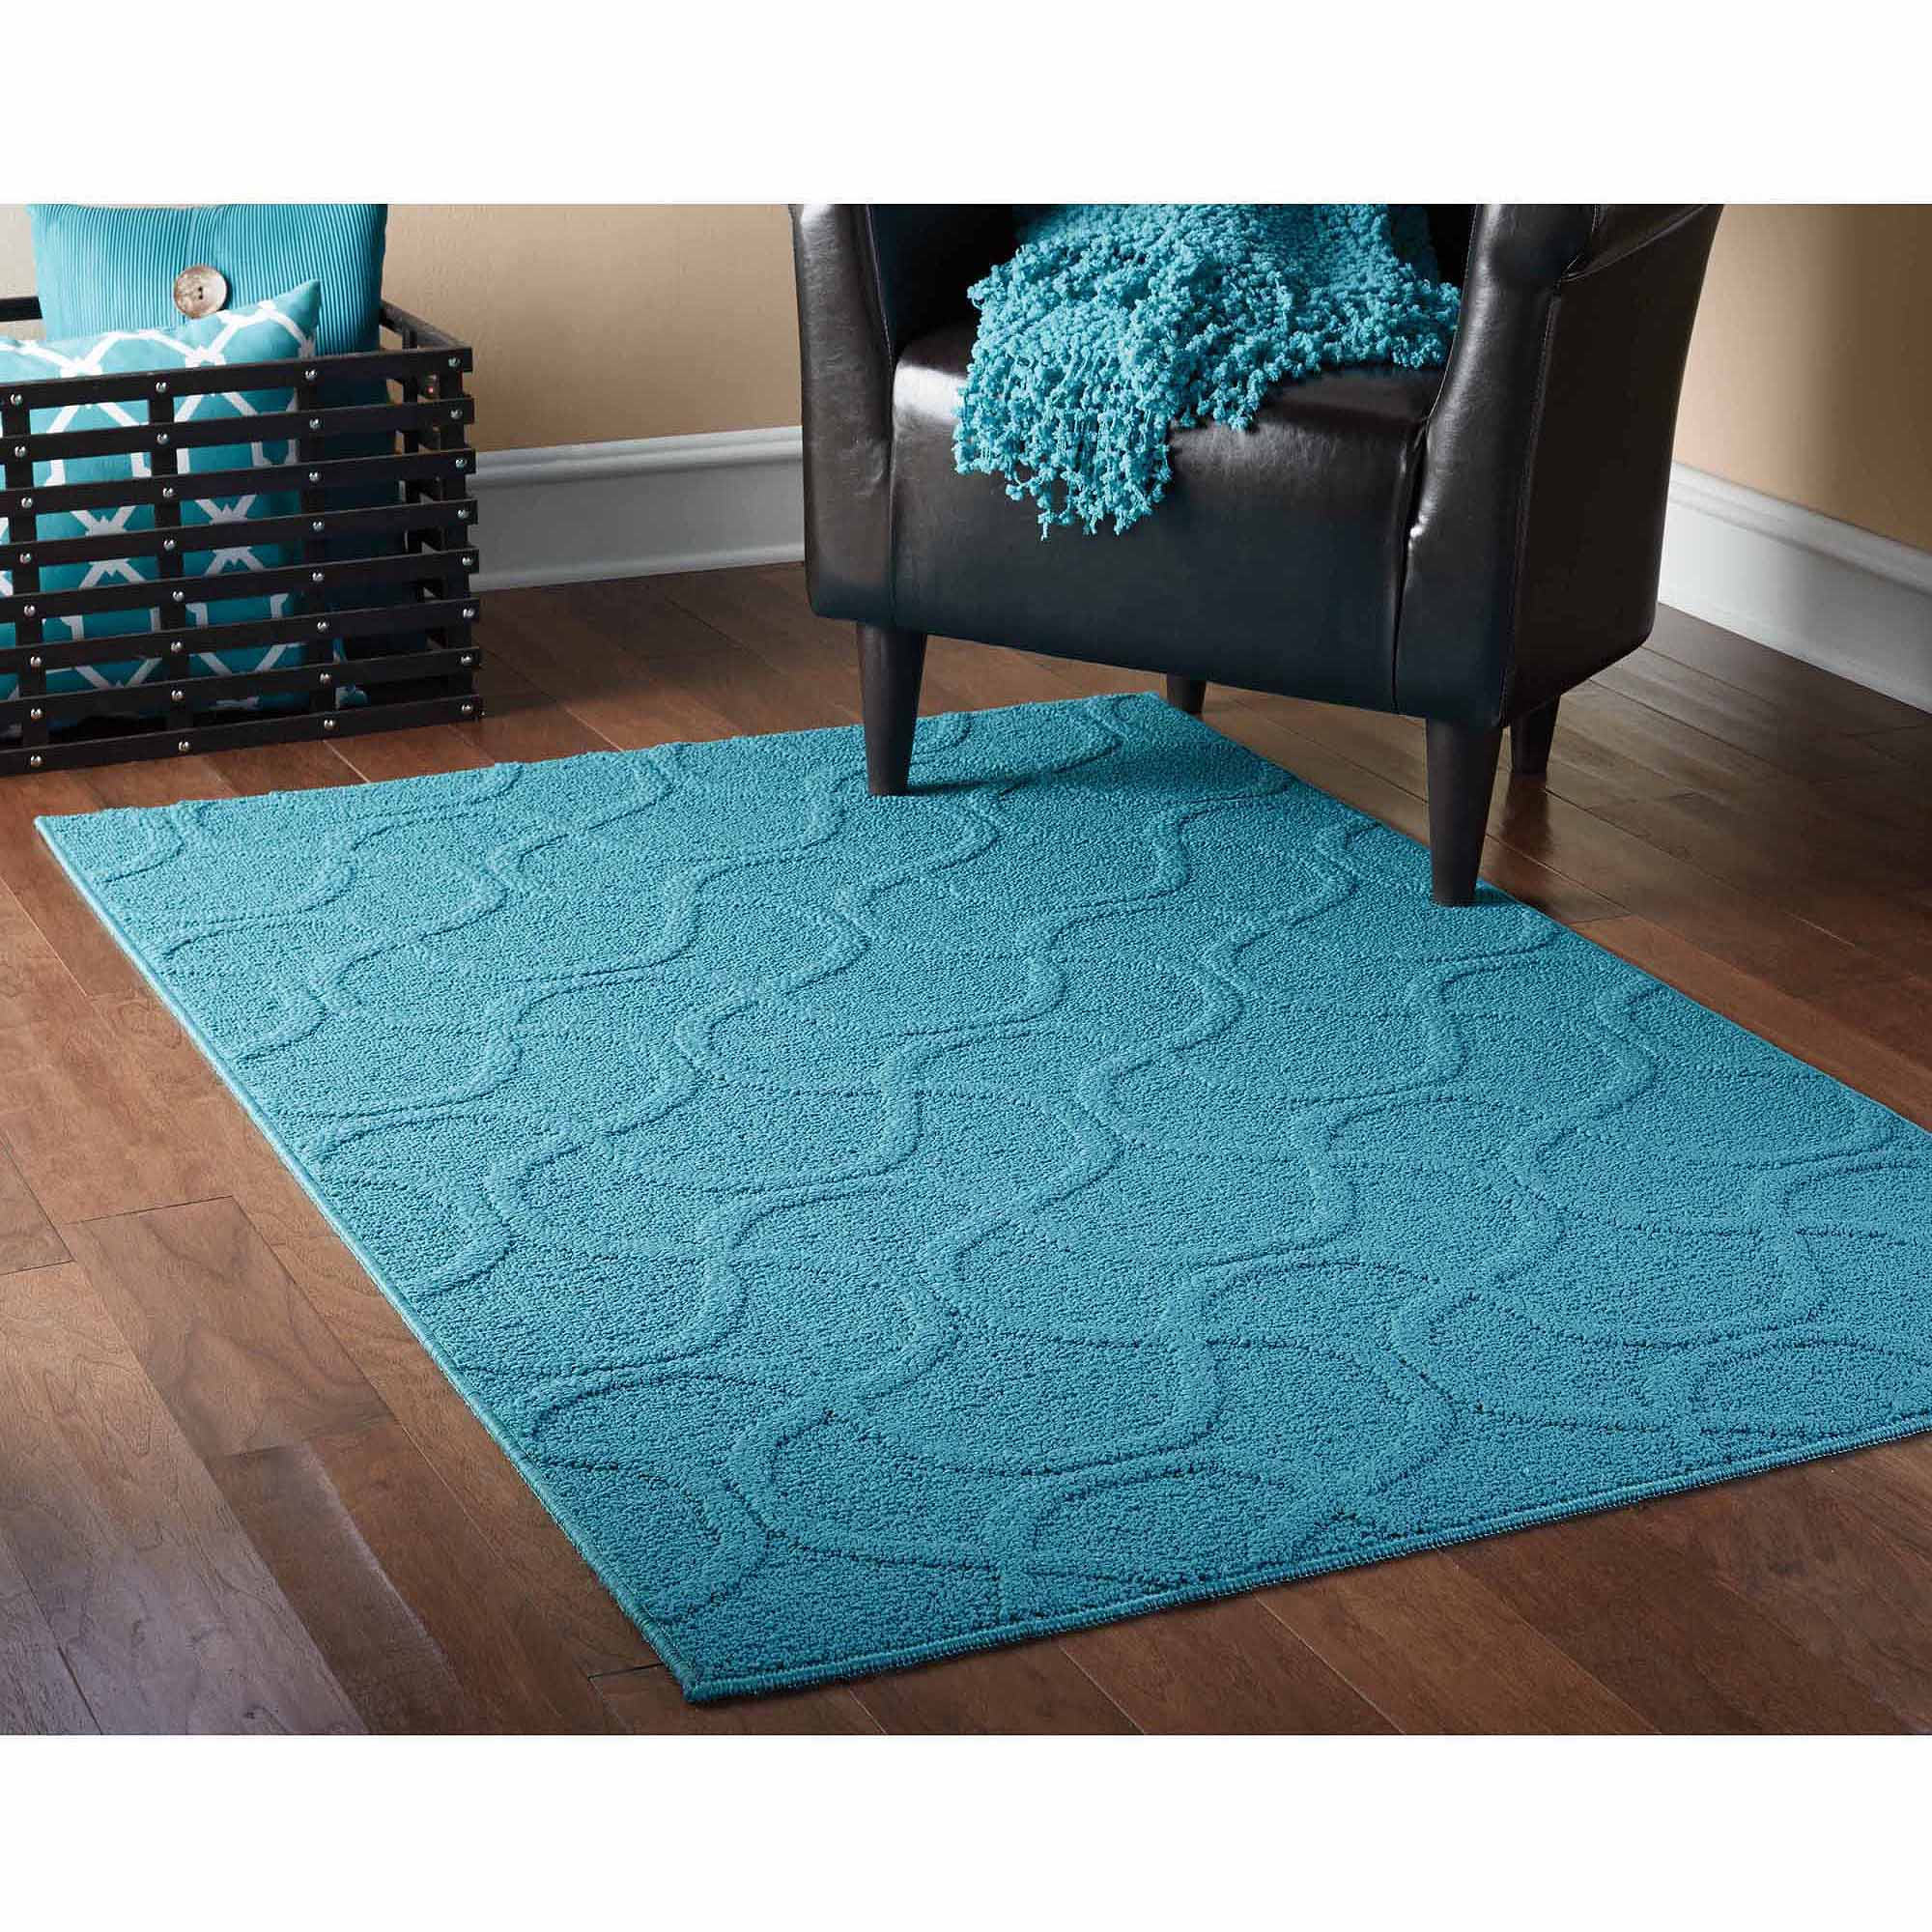 Mainstays Brentwood Collection Drizzle Style Area Rug, Teal